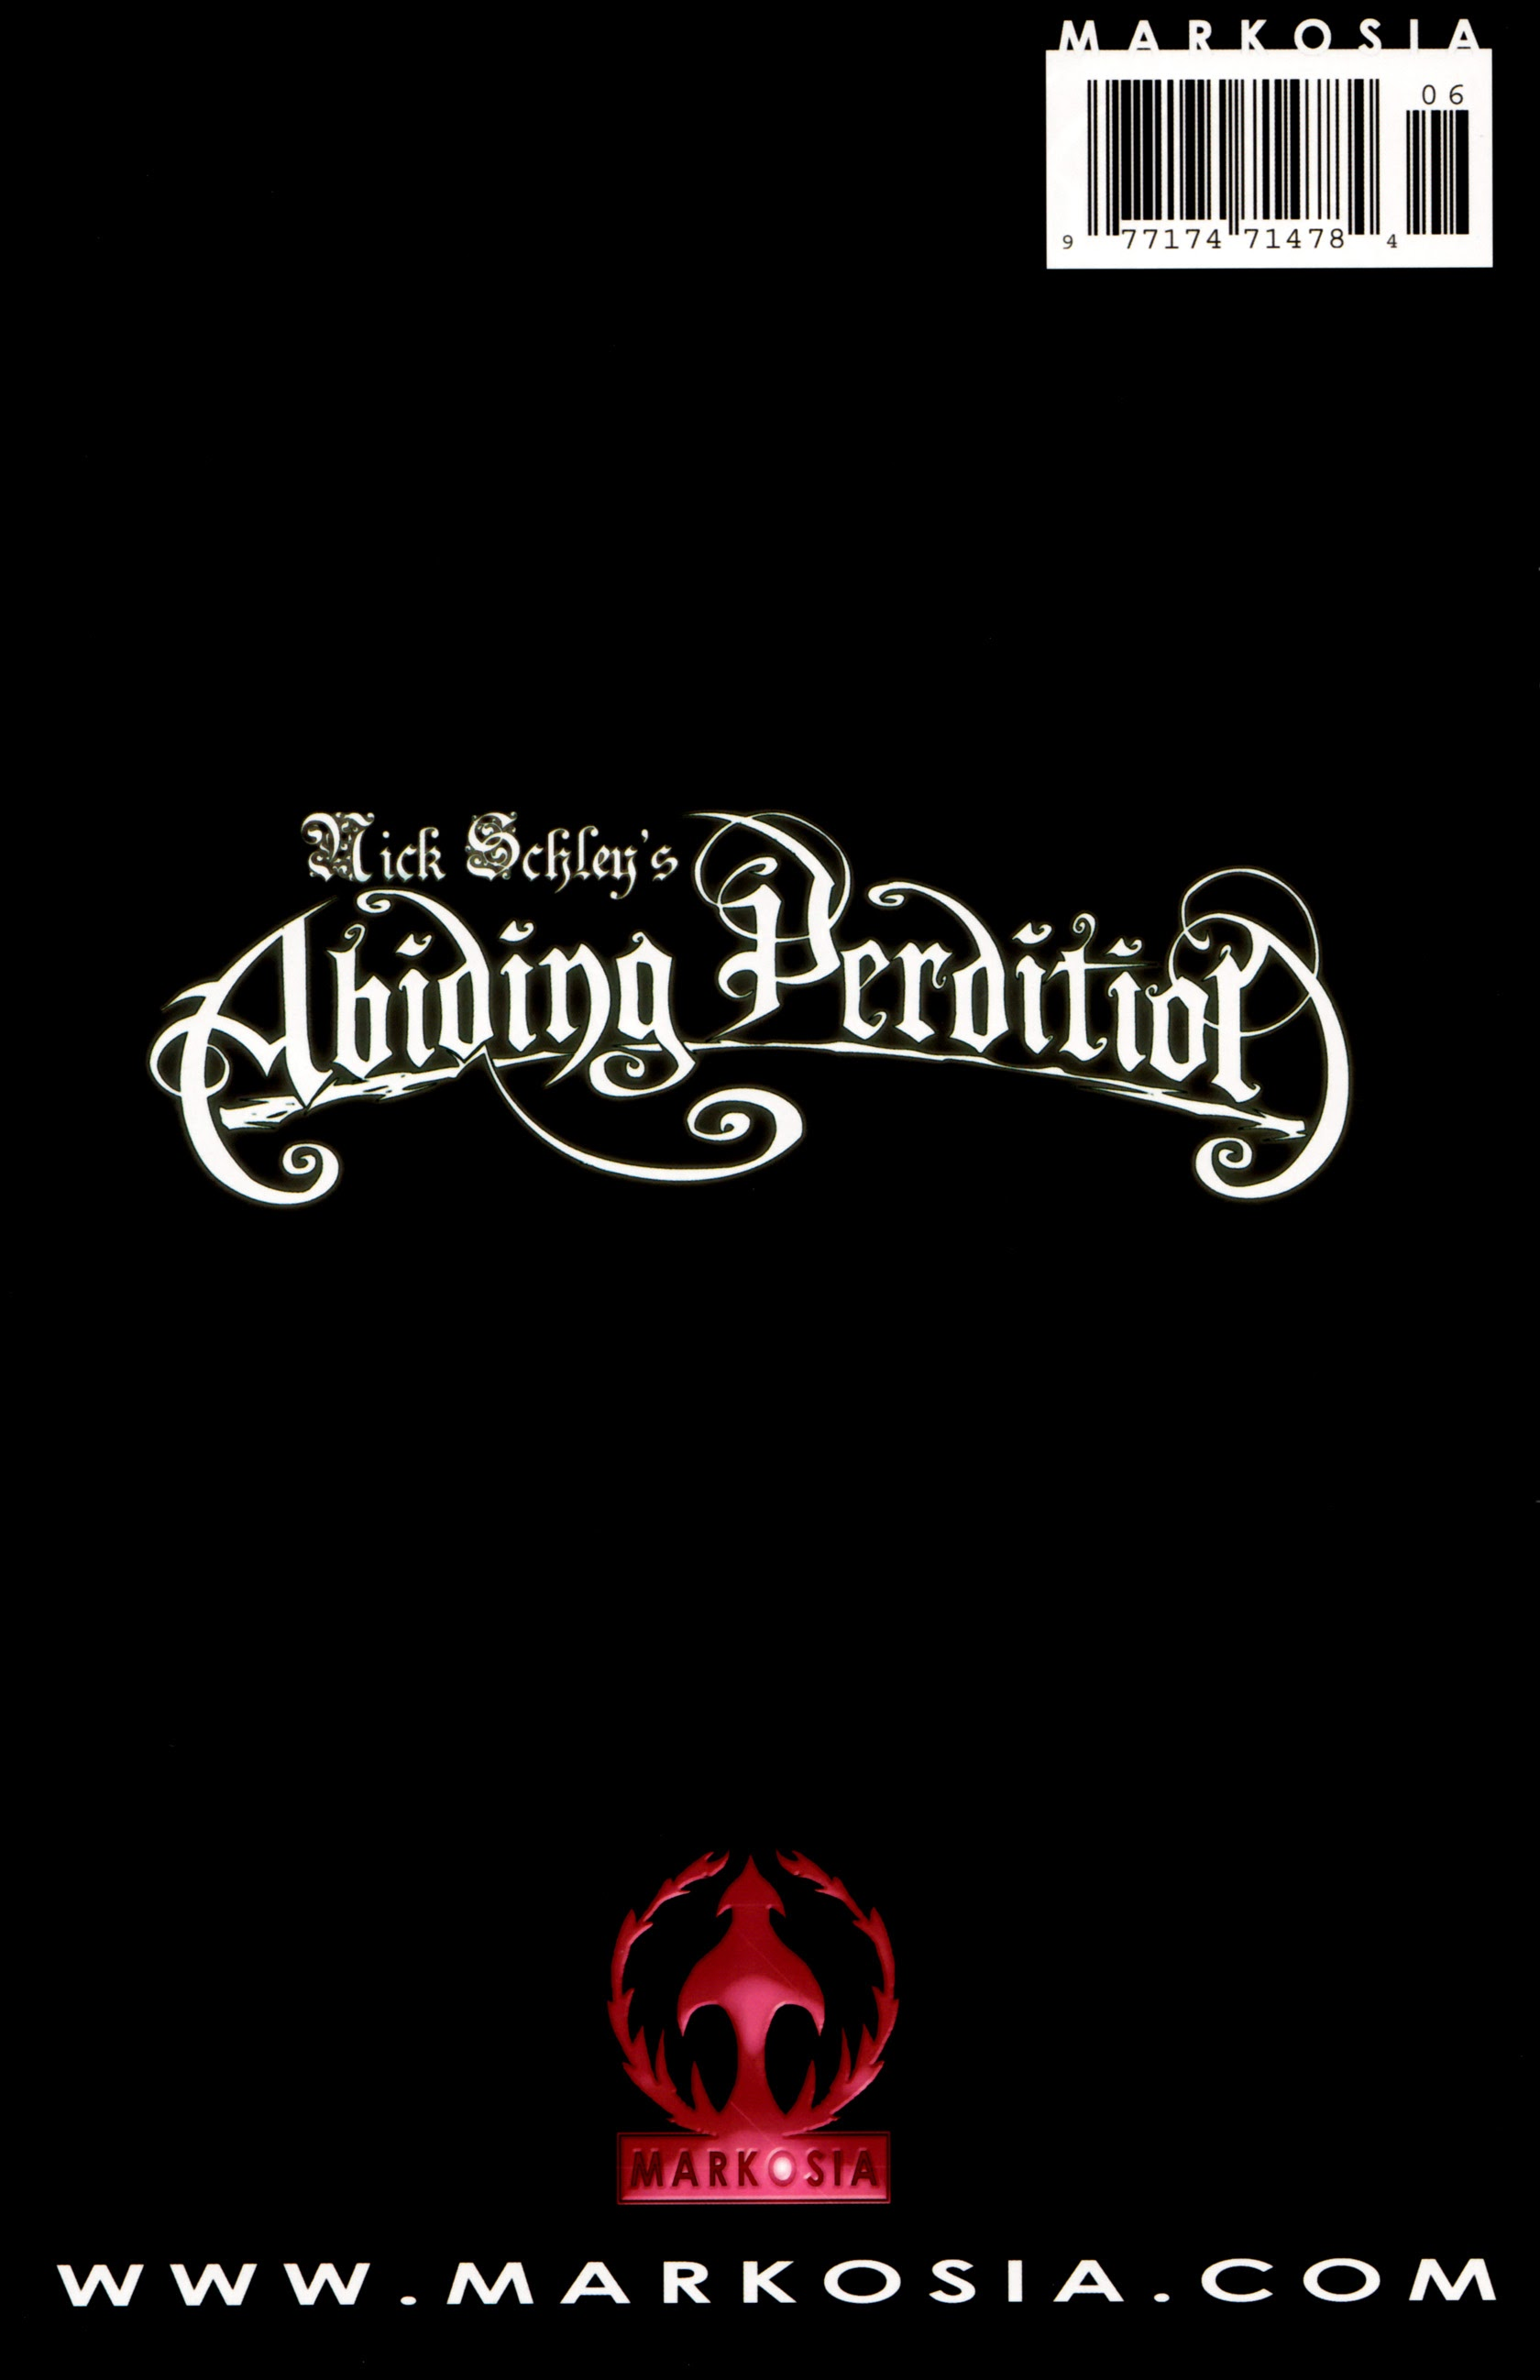 Read online Abiding Perdition comic -  Issue #6 - 33